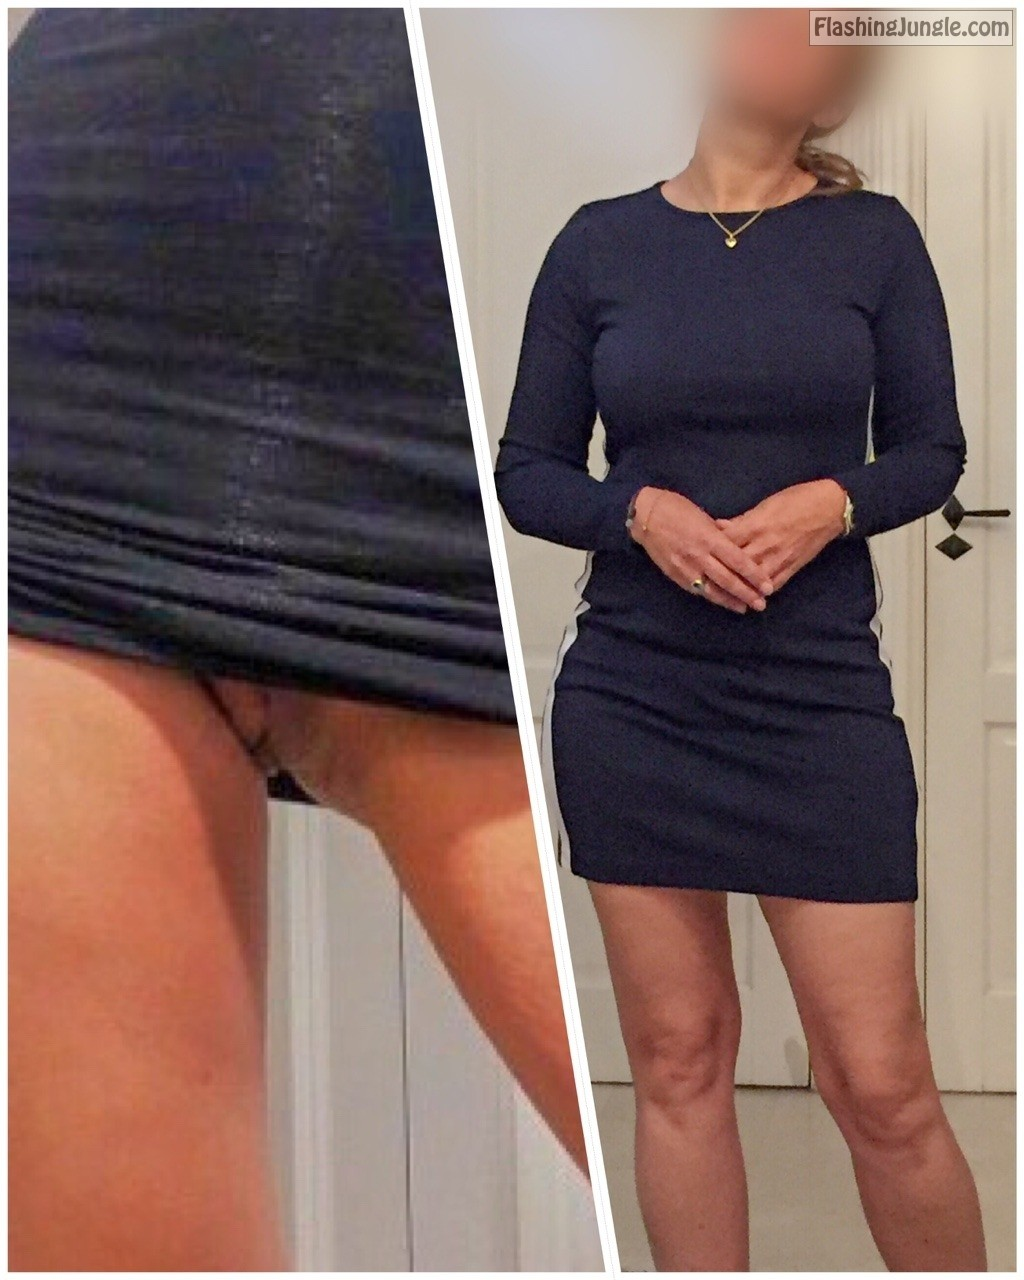 jackandjillat40: So the decision on what to wear today is final. Short dress. The sheer bra to... no panties